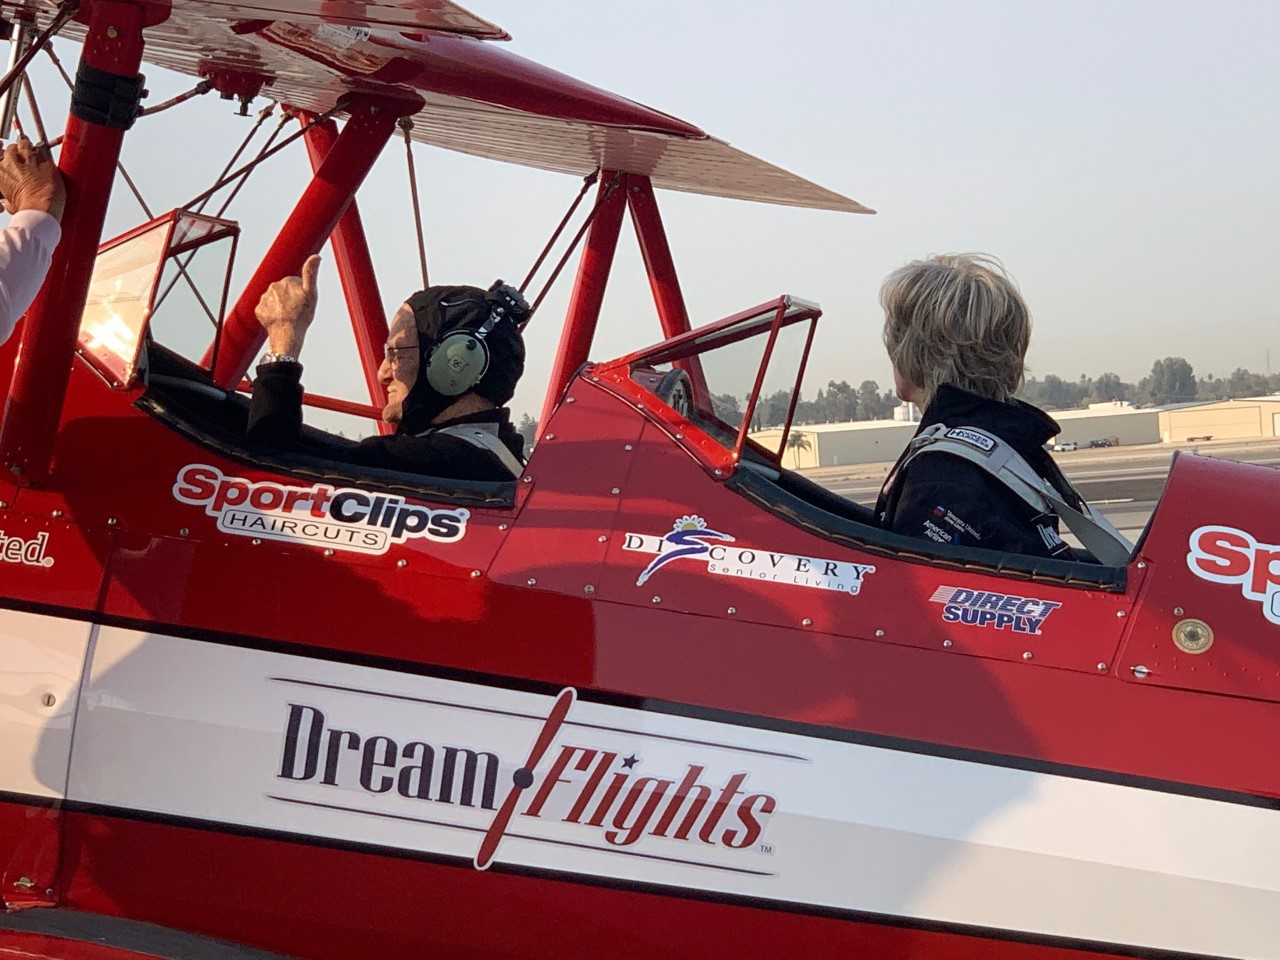 100-Year-Old WWII Veteran Honored with Dream Flights